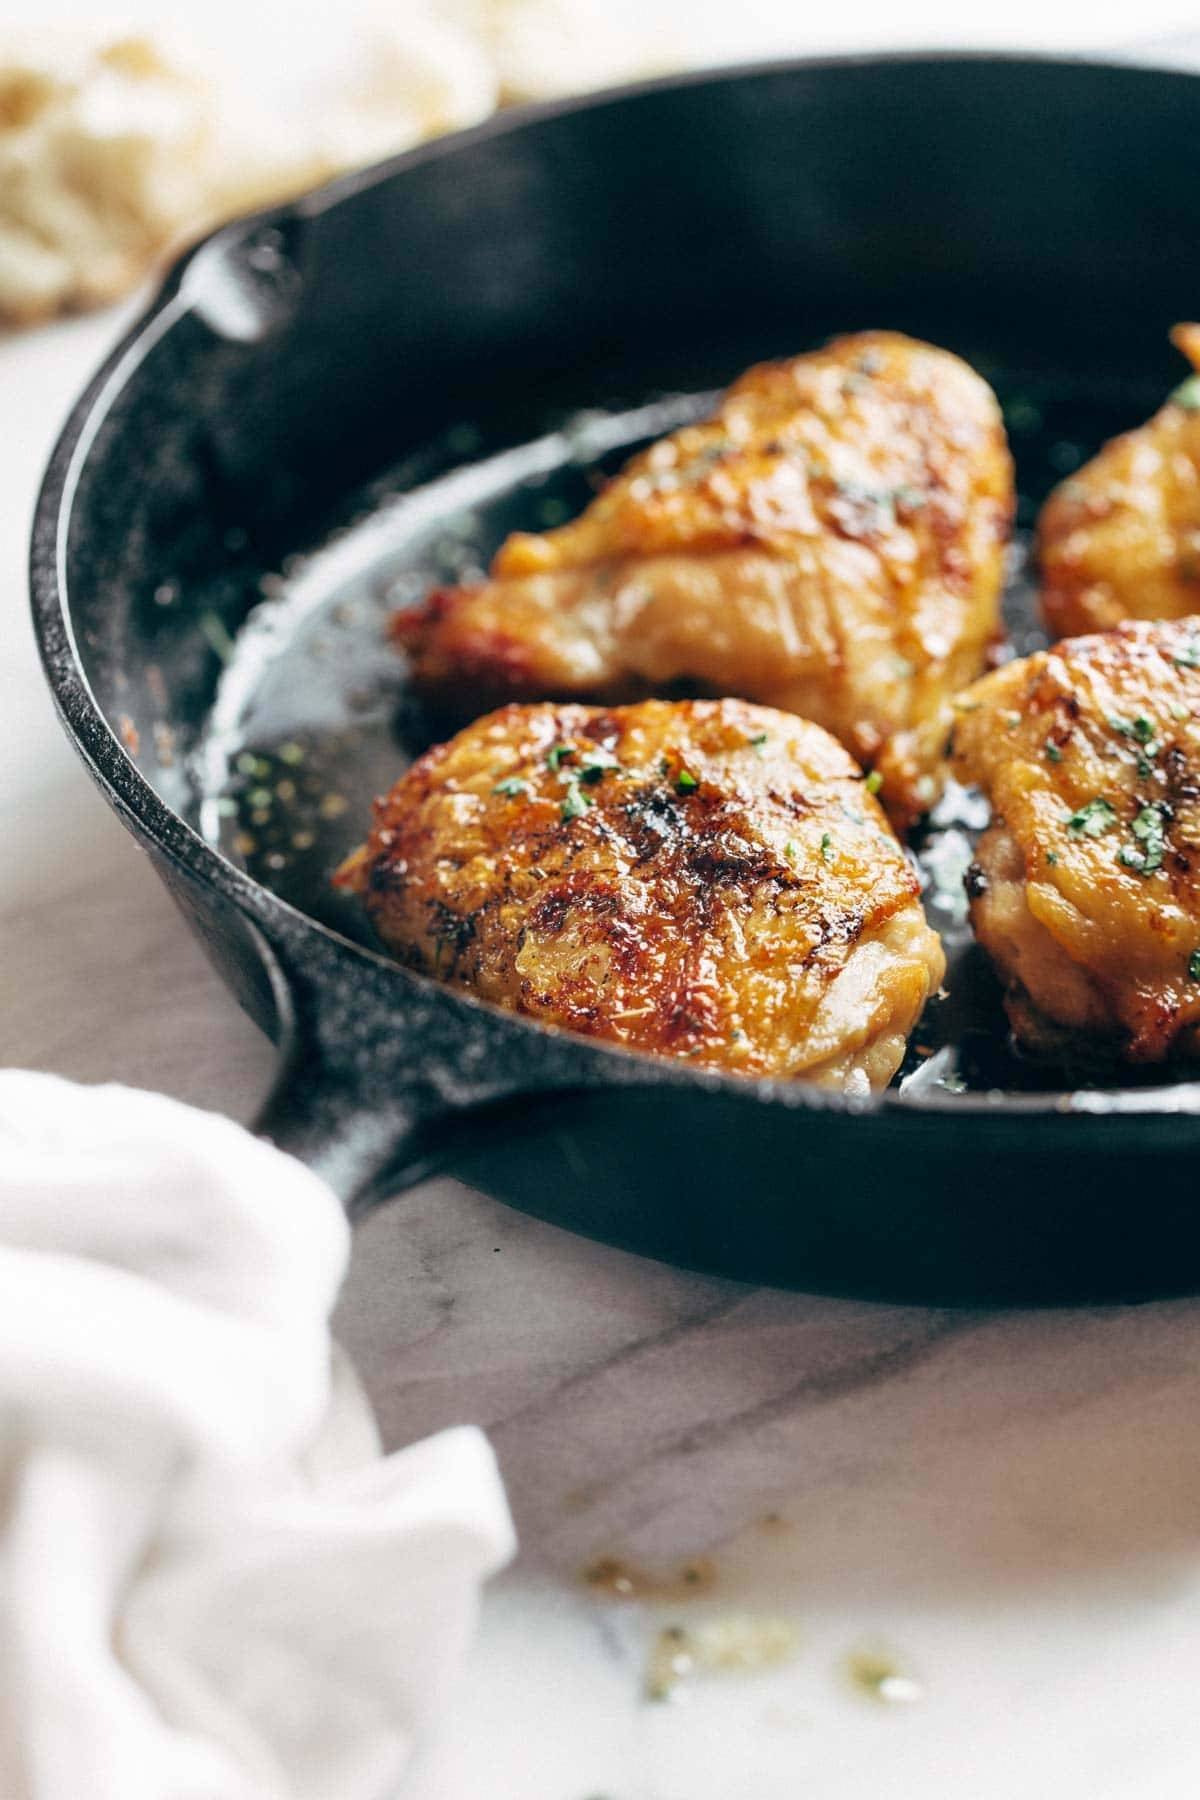 Honey Lemon Chicken in a skillet.